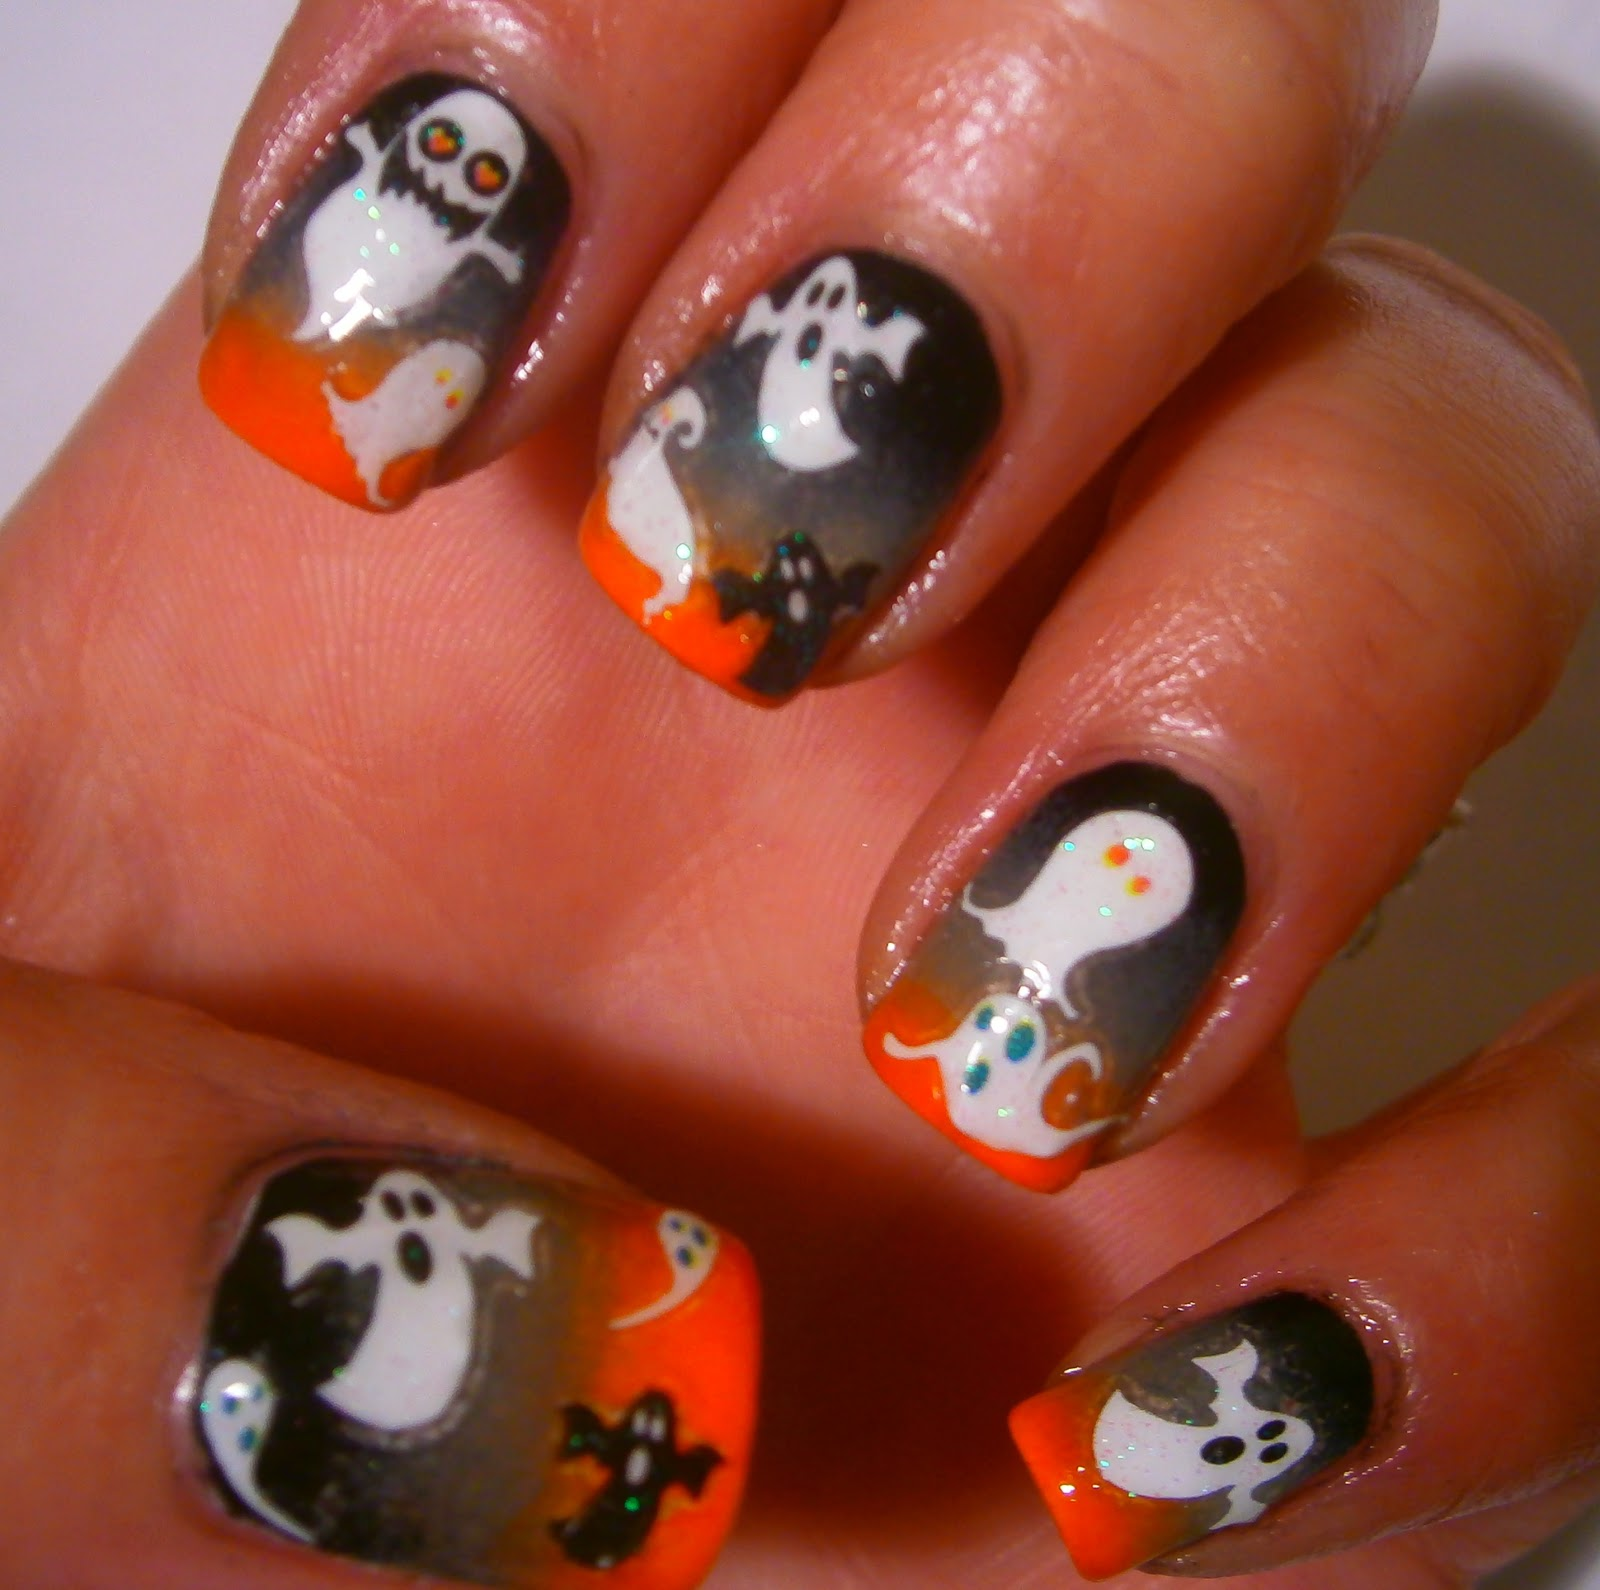 Polished Prance: Halloween Nail Art Challenge: Gradient